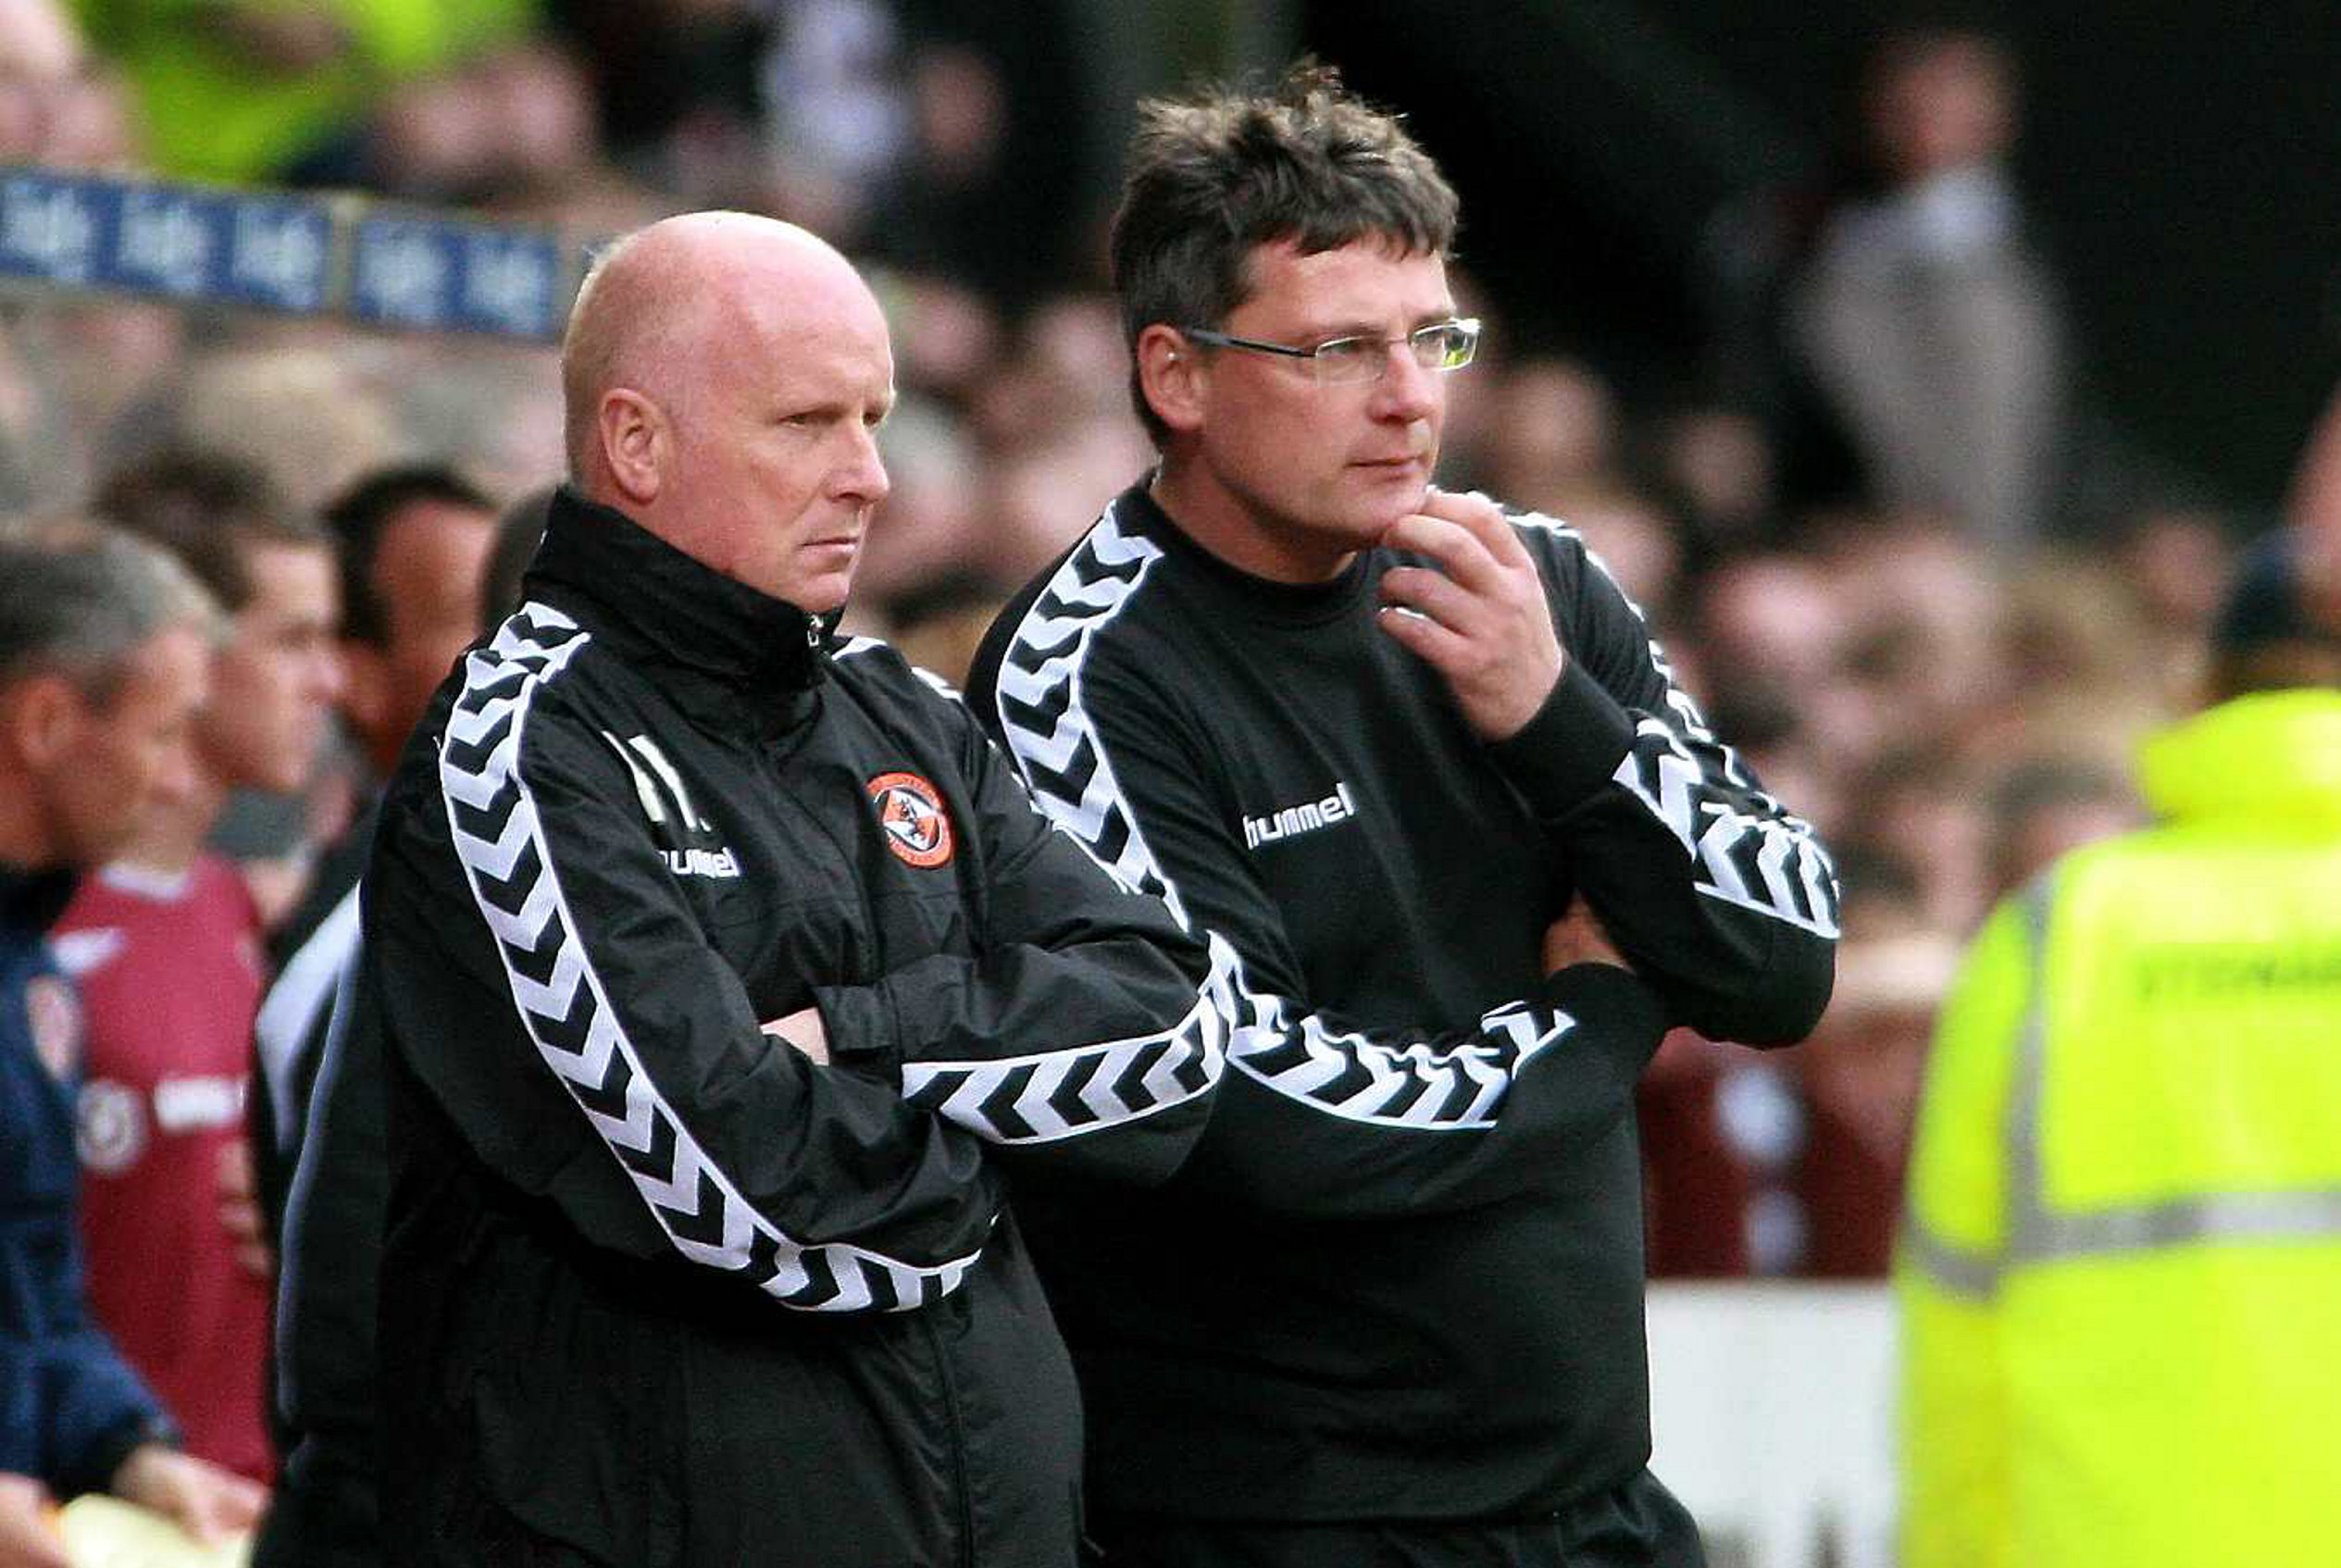 Former Dundee United managers Peter Houston and Craig Levein.